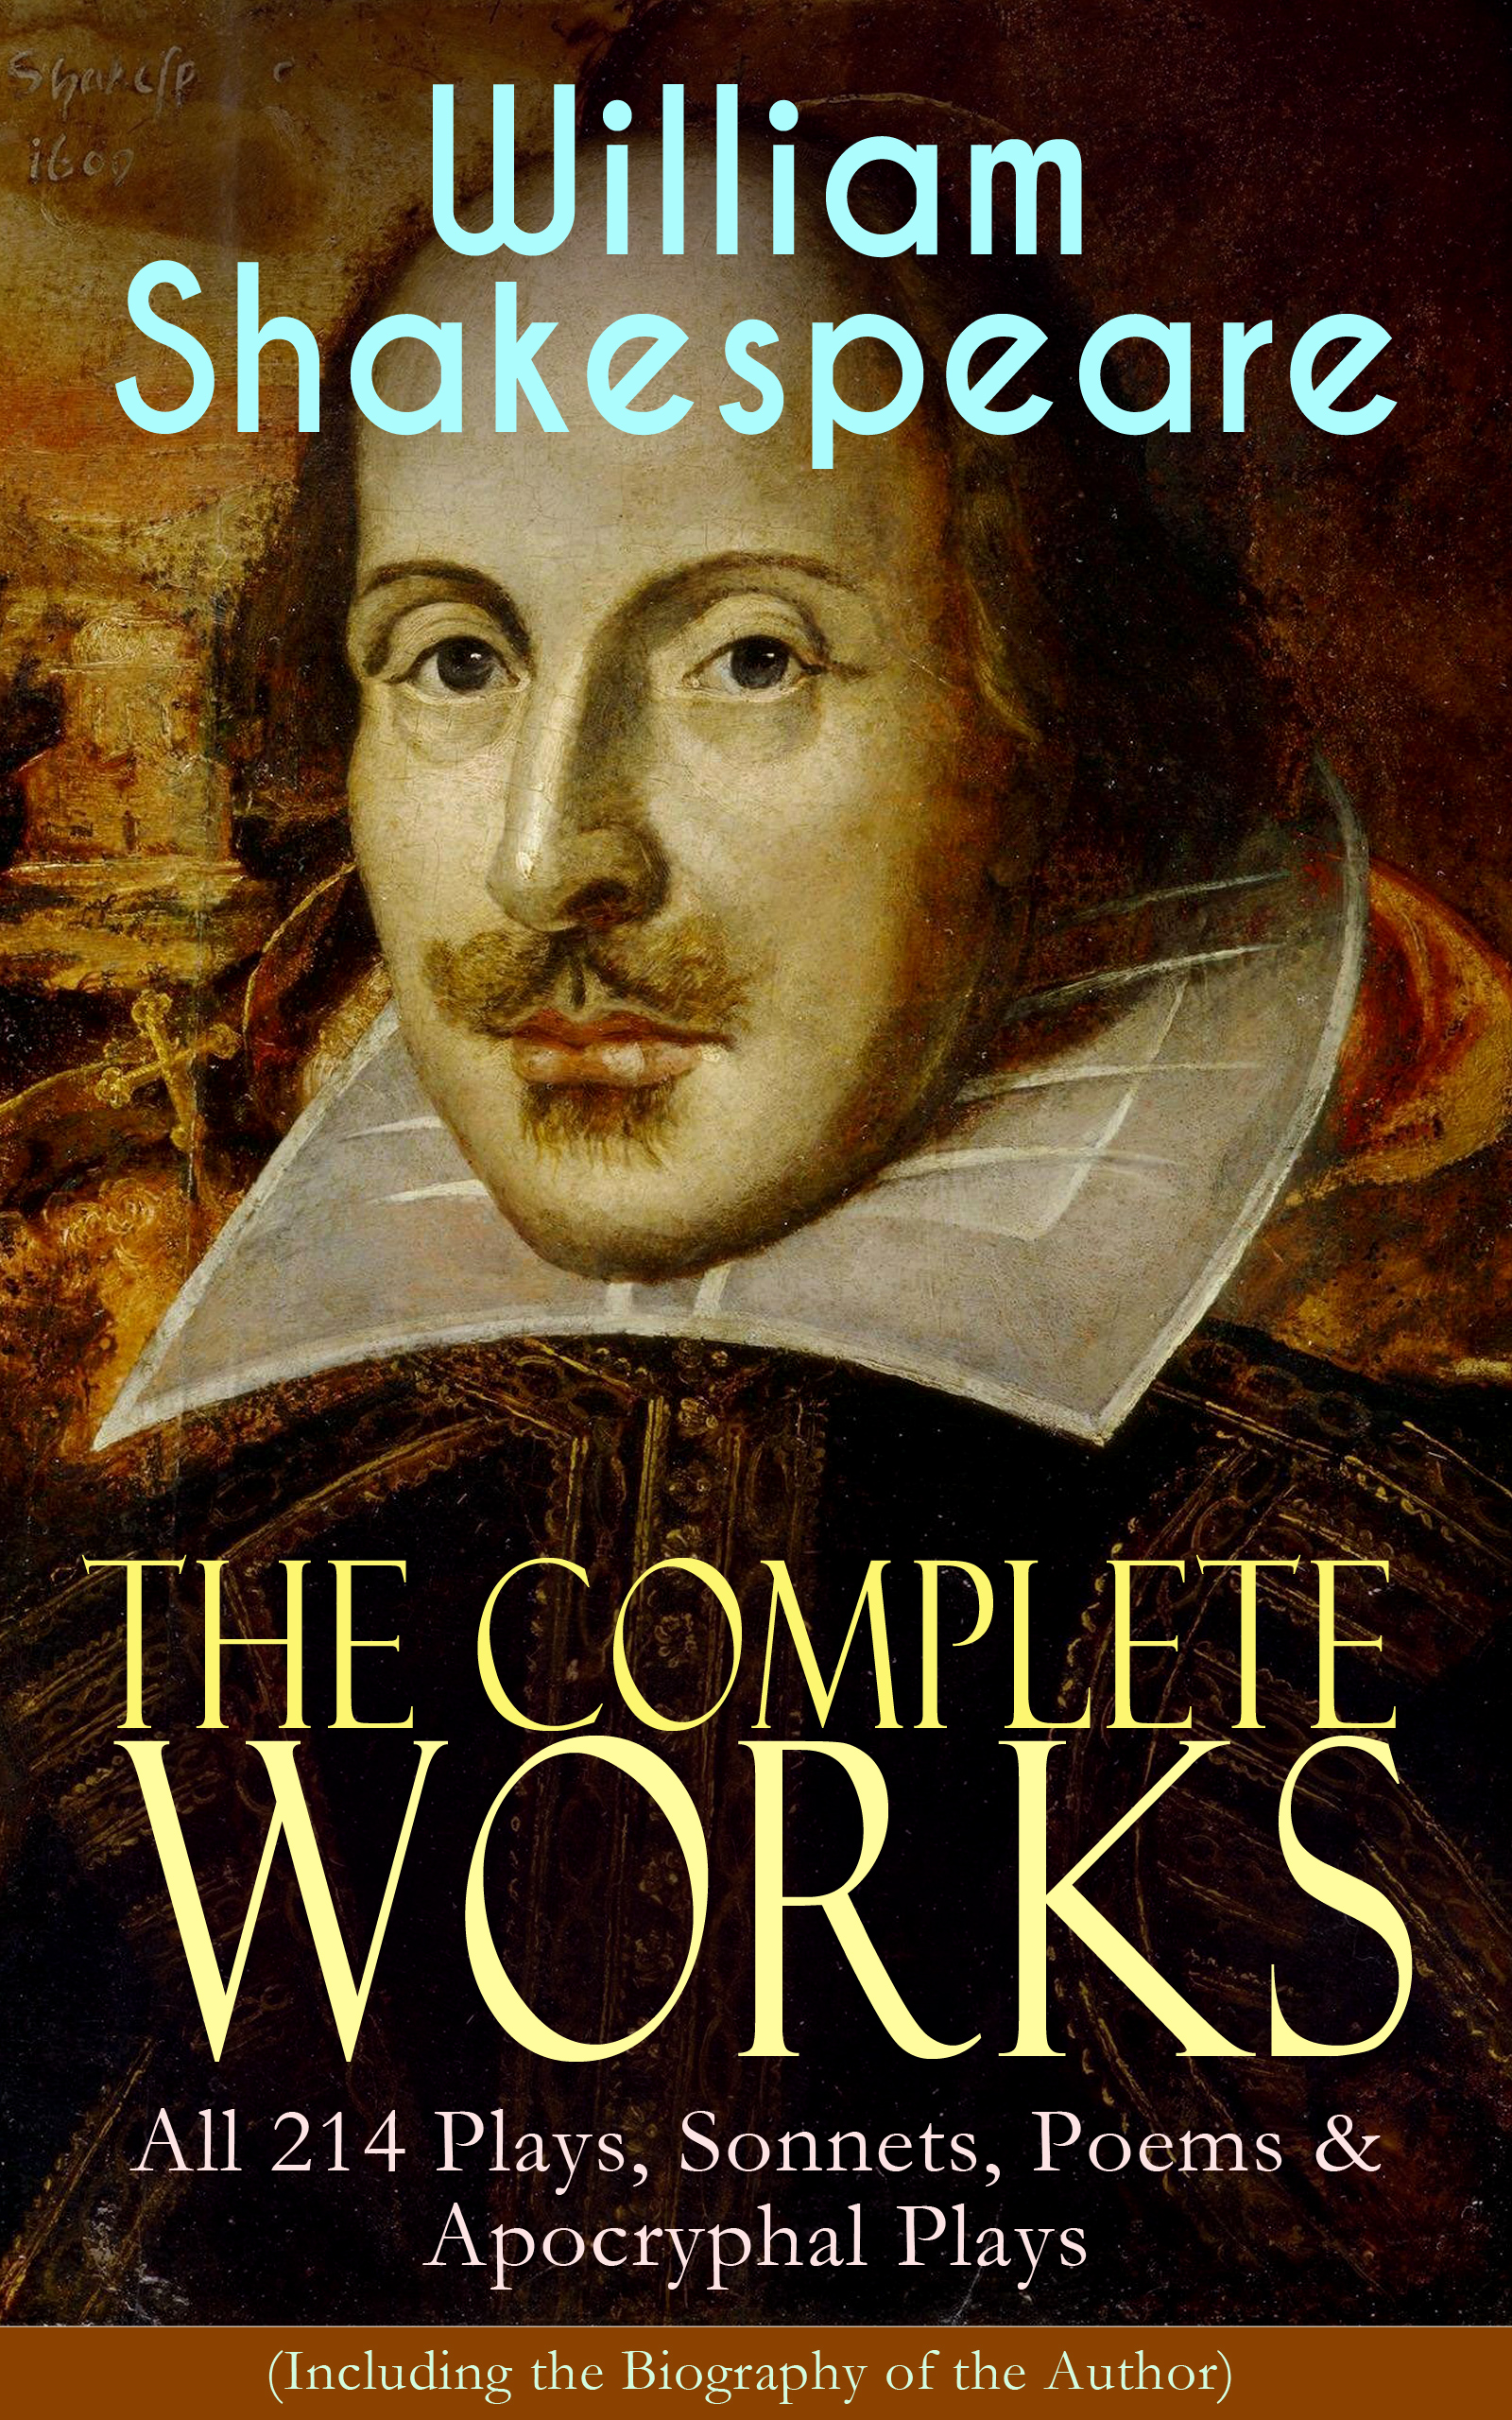 the complete works of william shakespeare all 214 plays sonnets poems apocryphal plays including the biography of the author